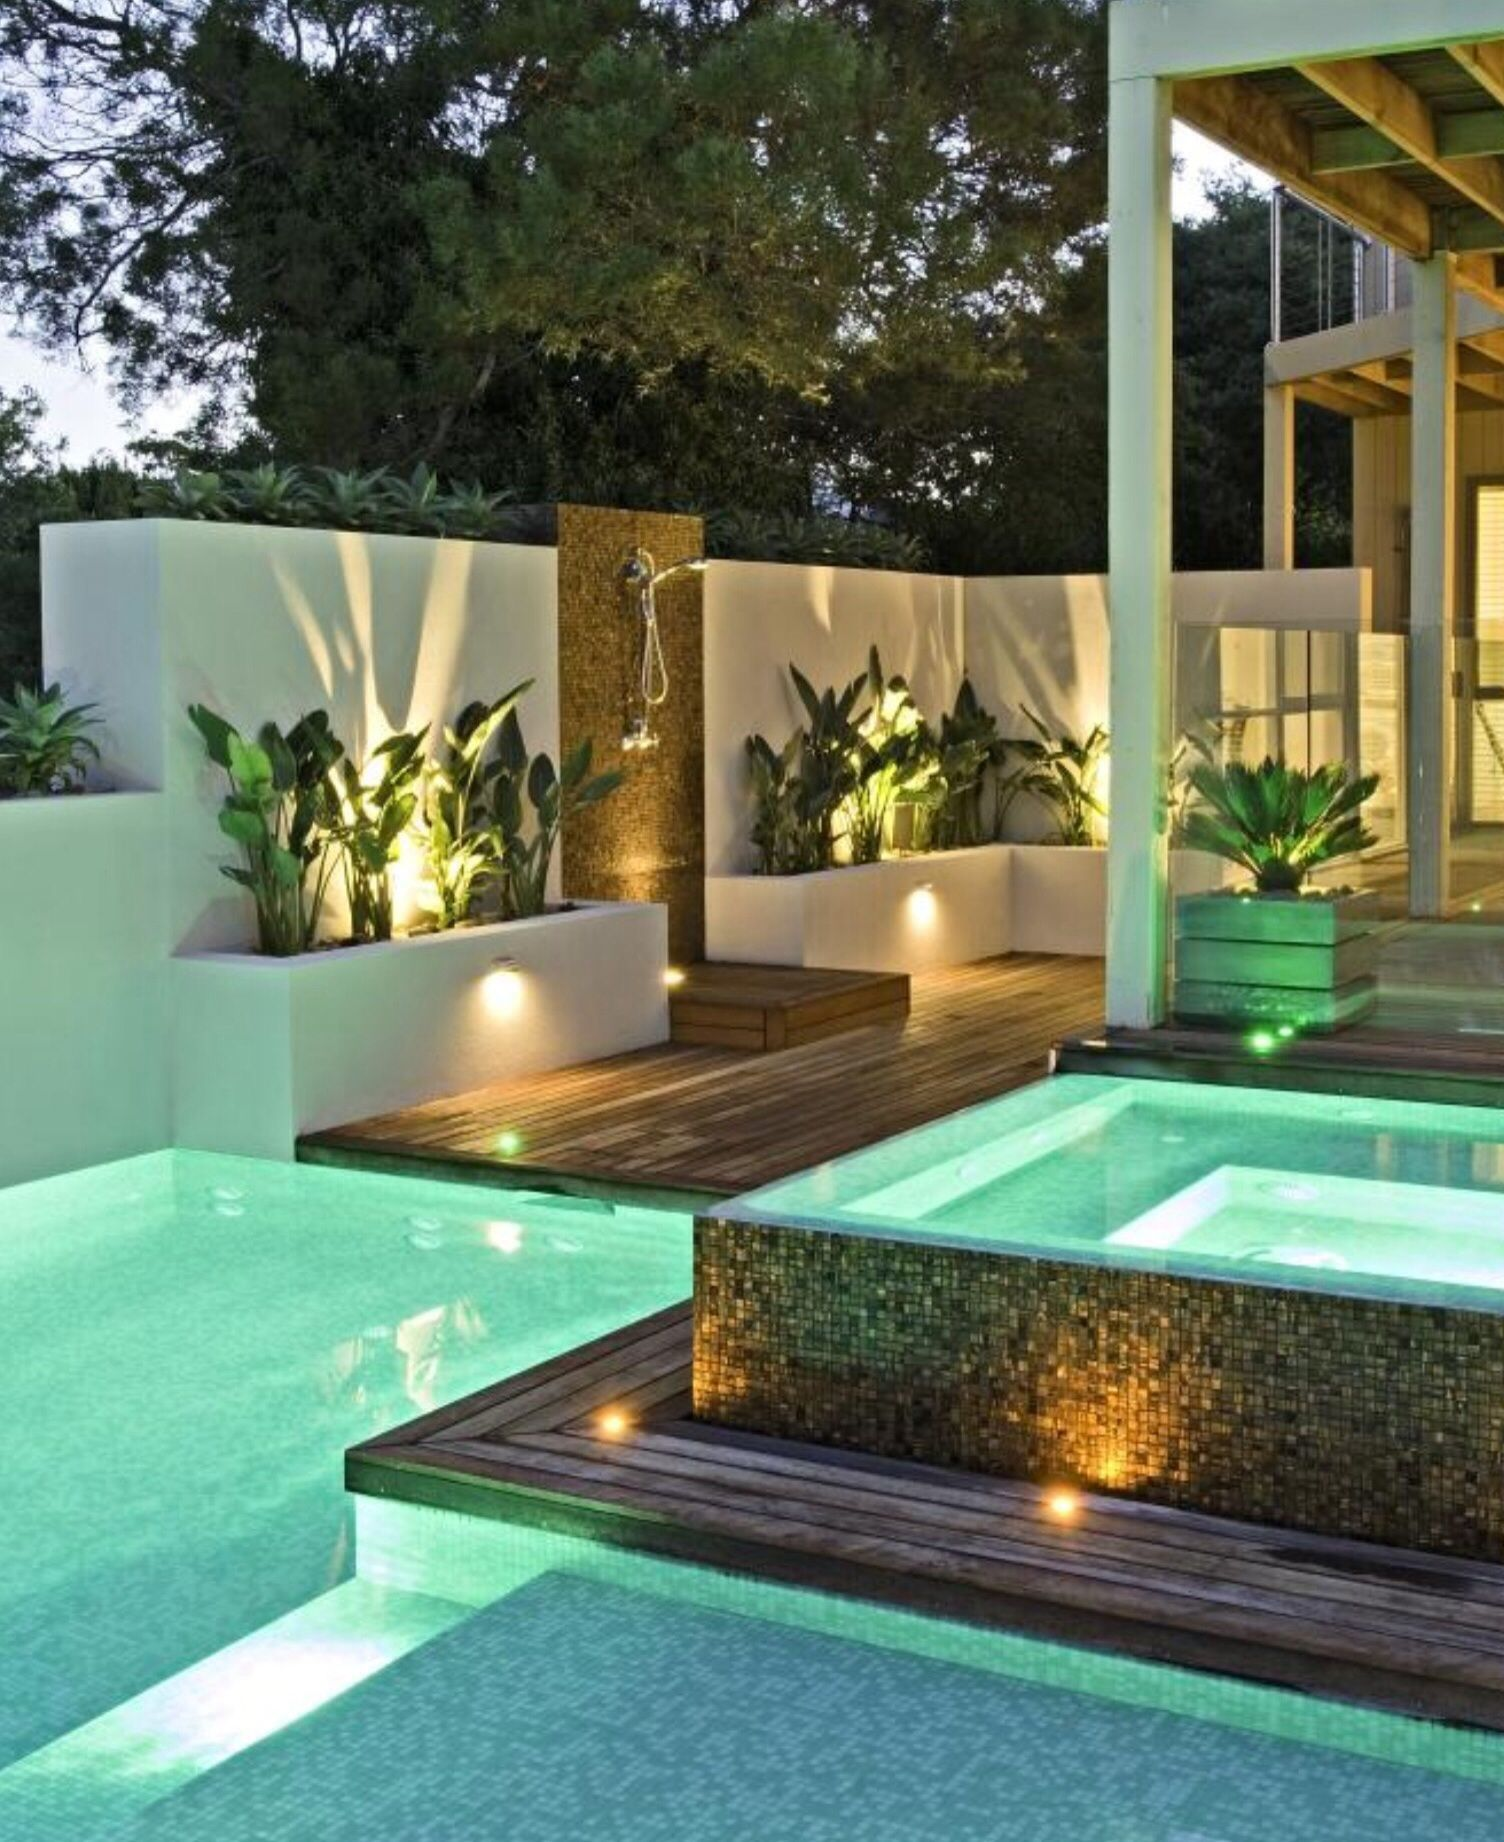 Pool and spa in your entertaining area | Small pool design ... on Outdoor Living Pool And Spa id=53412